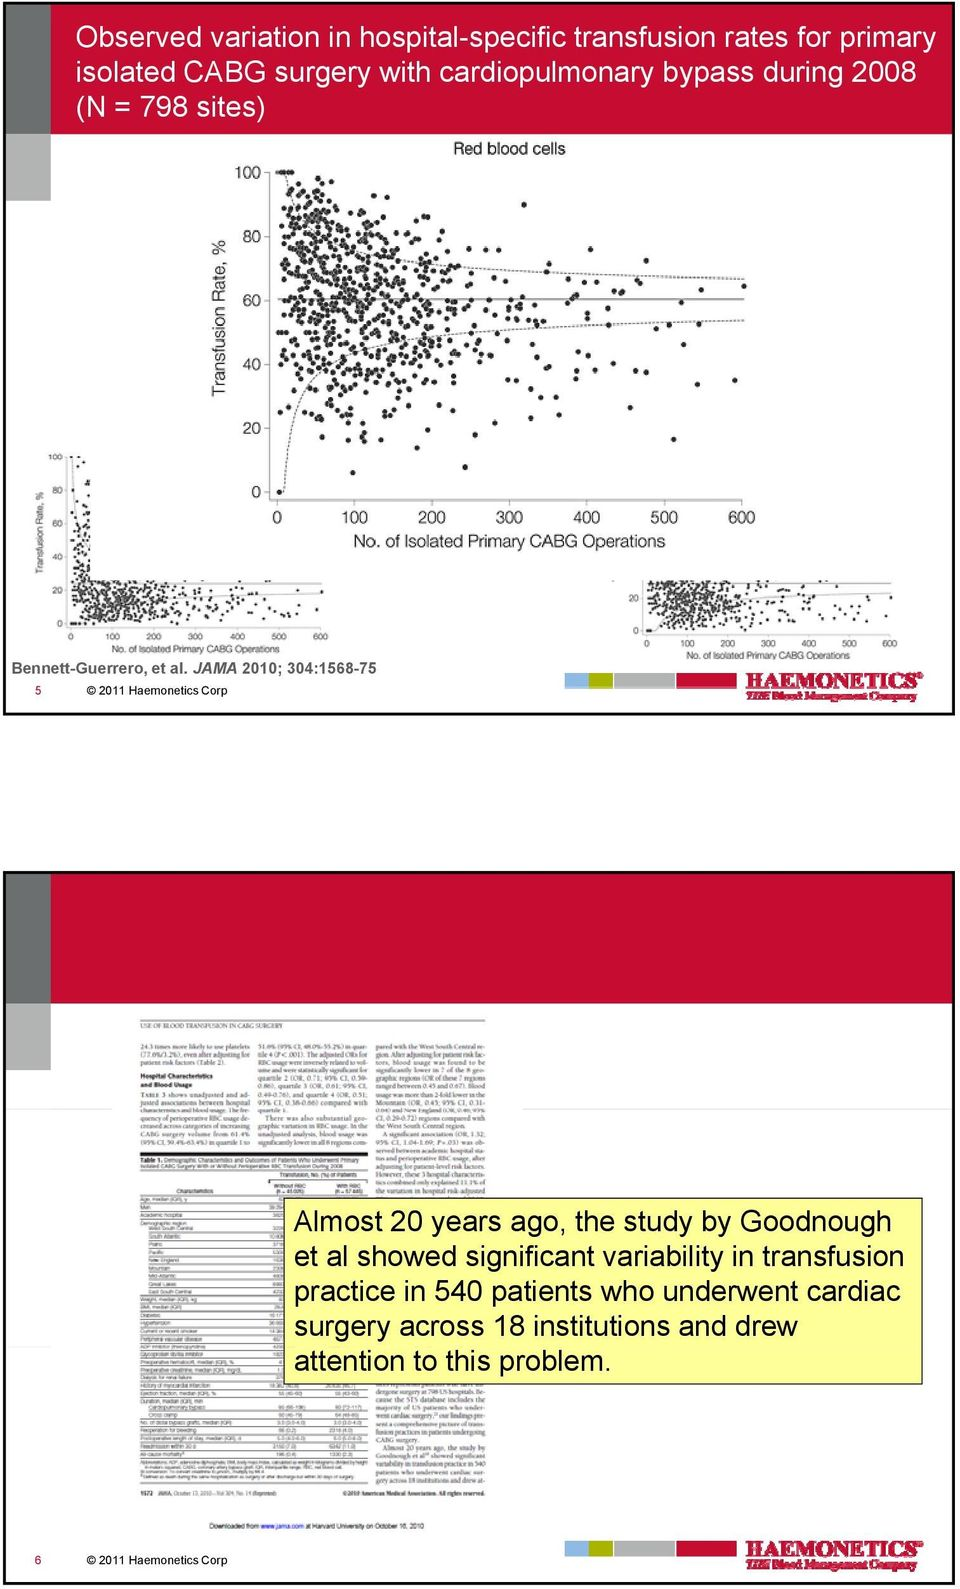 JAMA 2010; 304:1568-75 5 2011 Haemonetics Corp Almost 20 years ago, the study by Goodnough et al showed